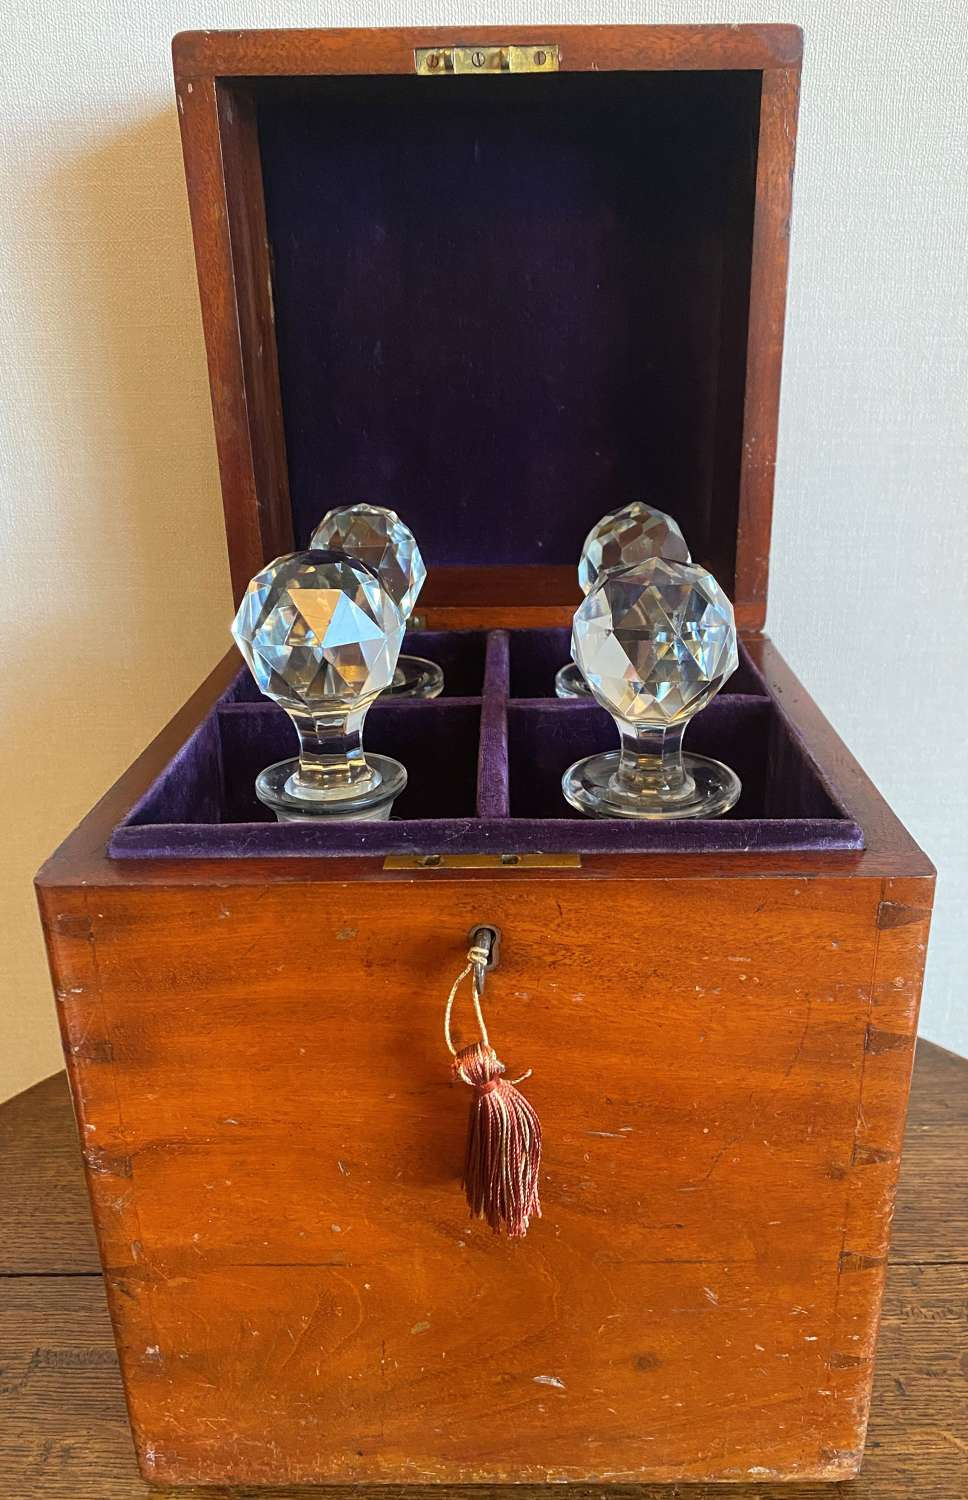 19th Century Four Divisional Decanter Box With Decanters